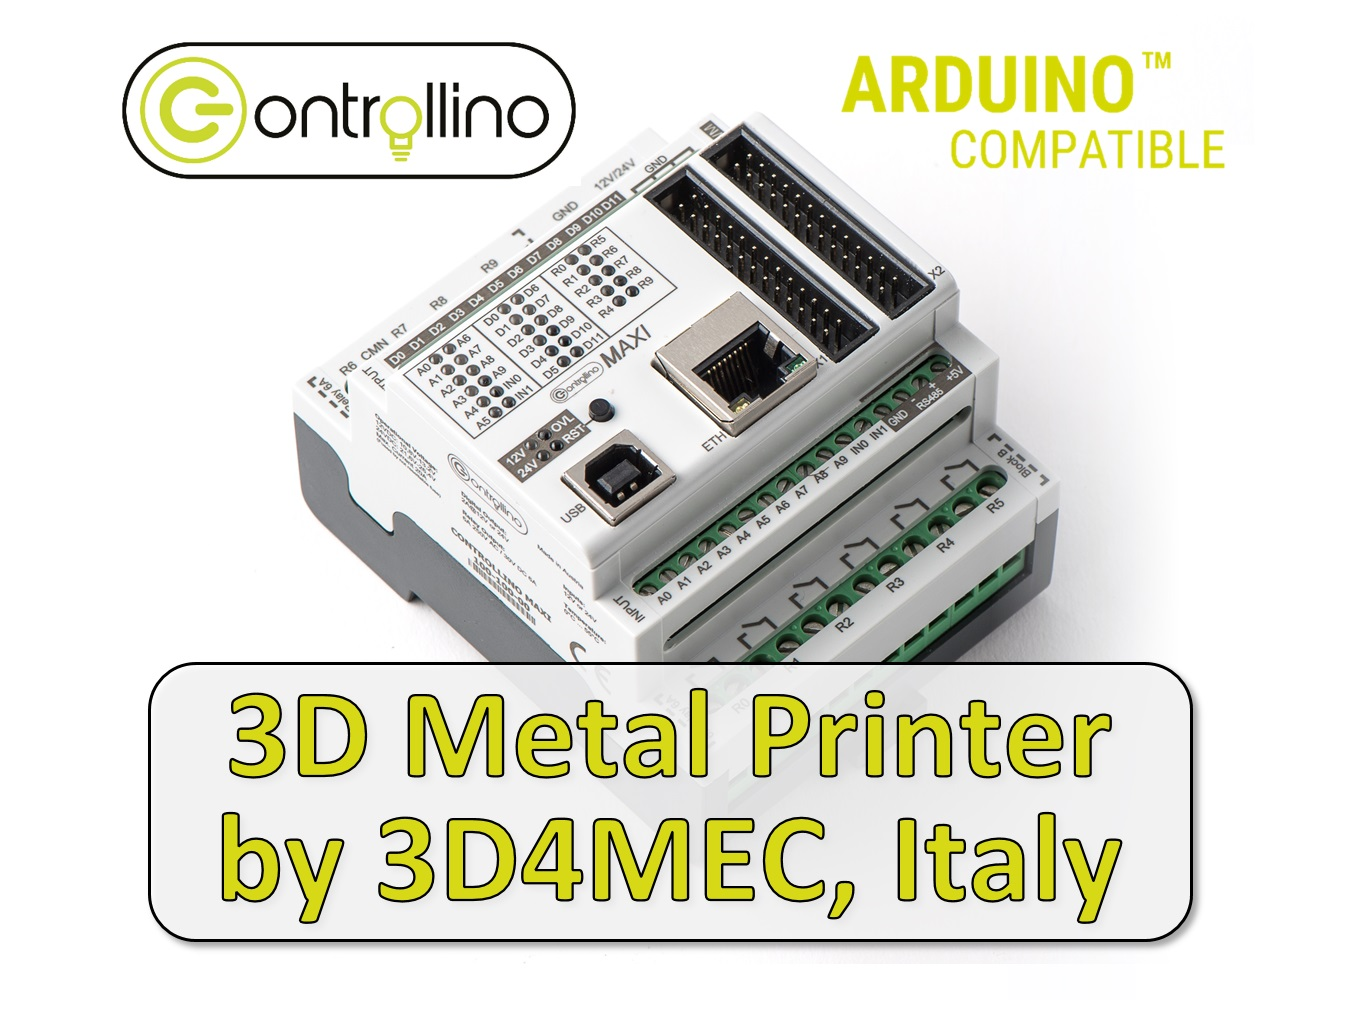 3D Metal Printer by 3D4MEC, Italy - powered by CONTROLLINO